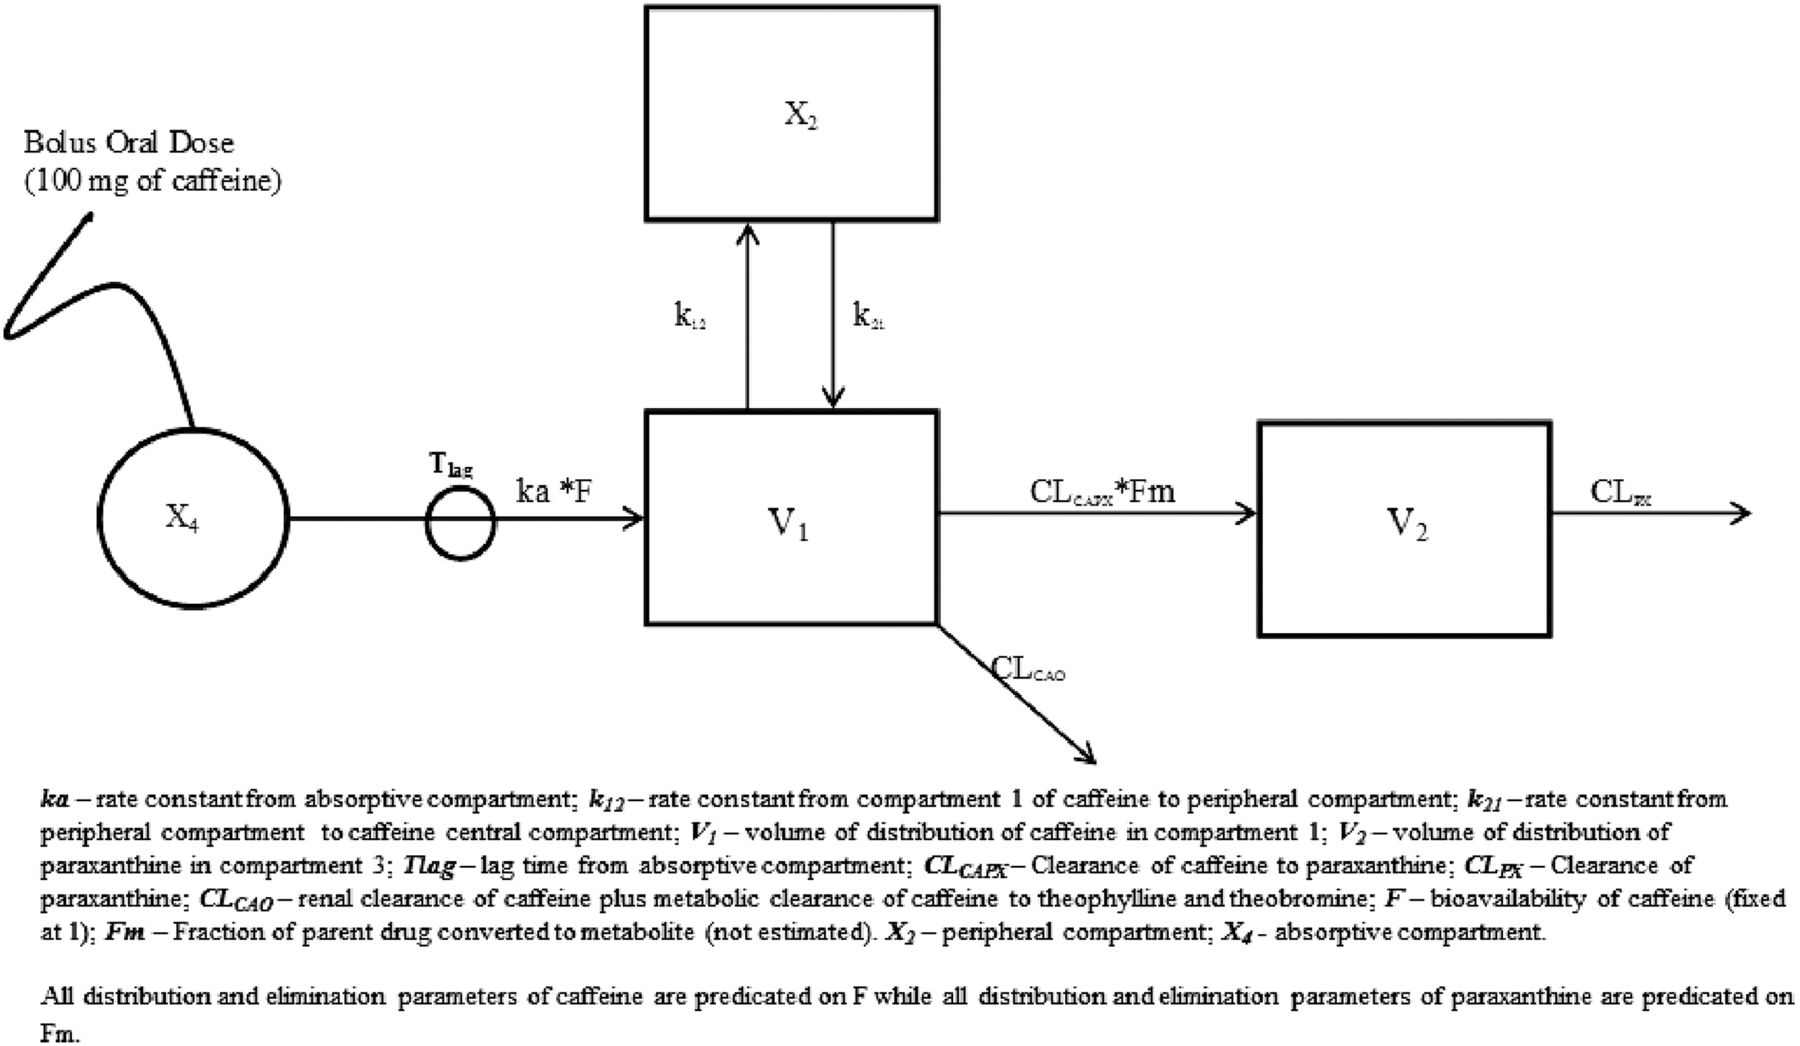 A Pharmacometric Approach To Investigate The Impact Of Methylxanthine Abstinence And Caffeine